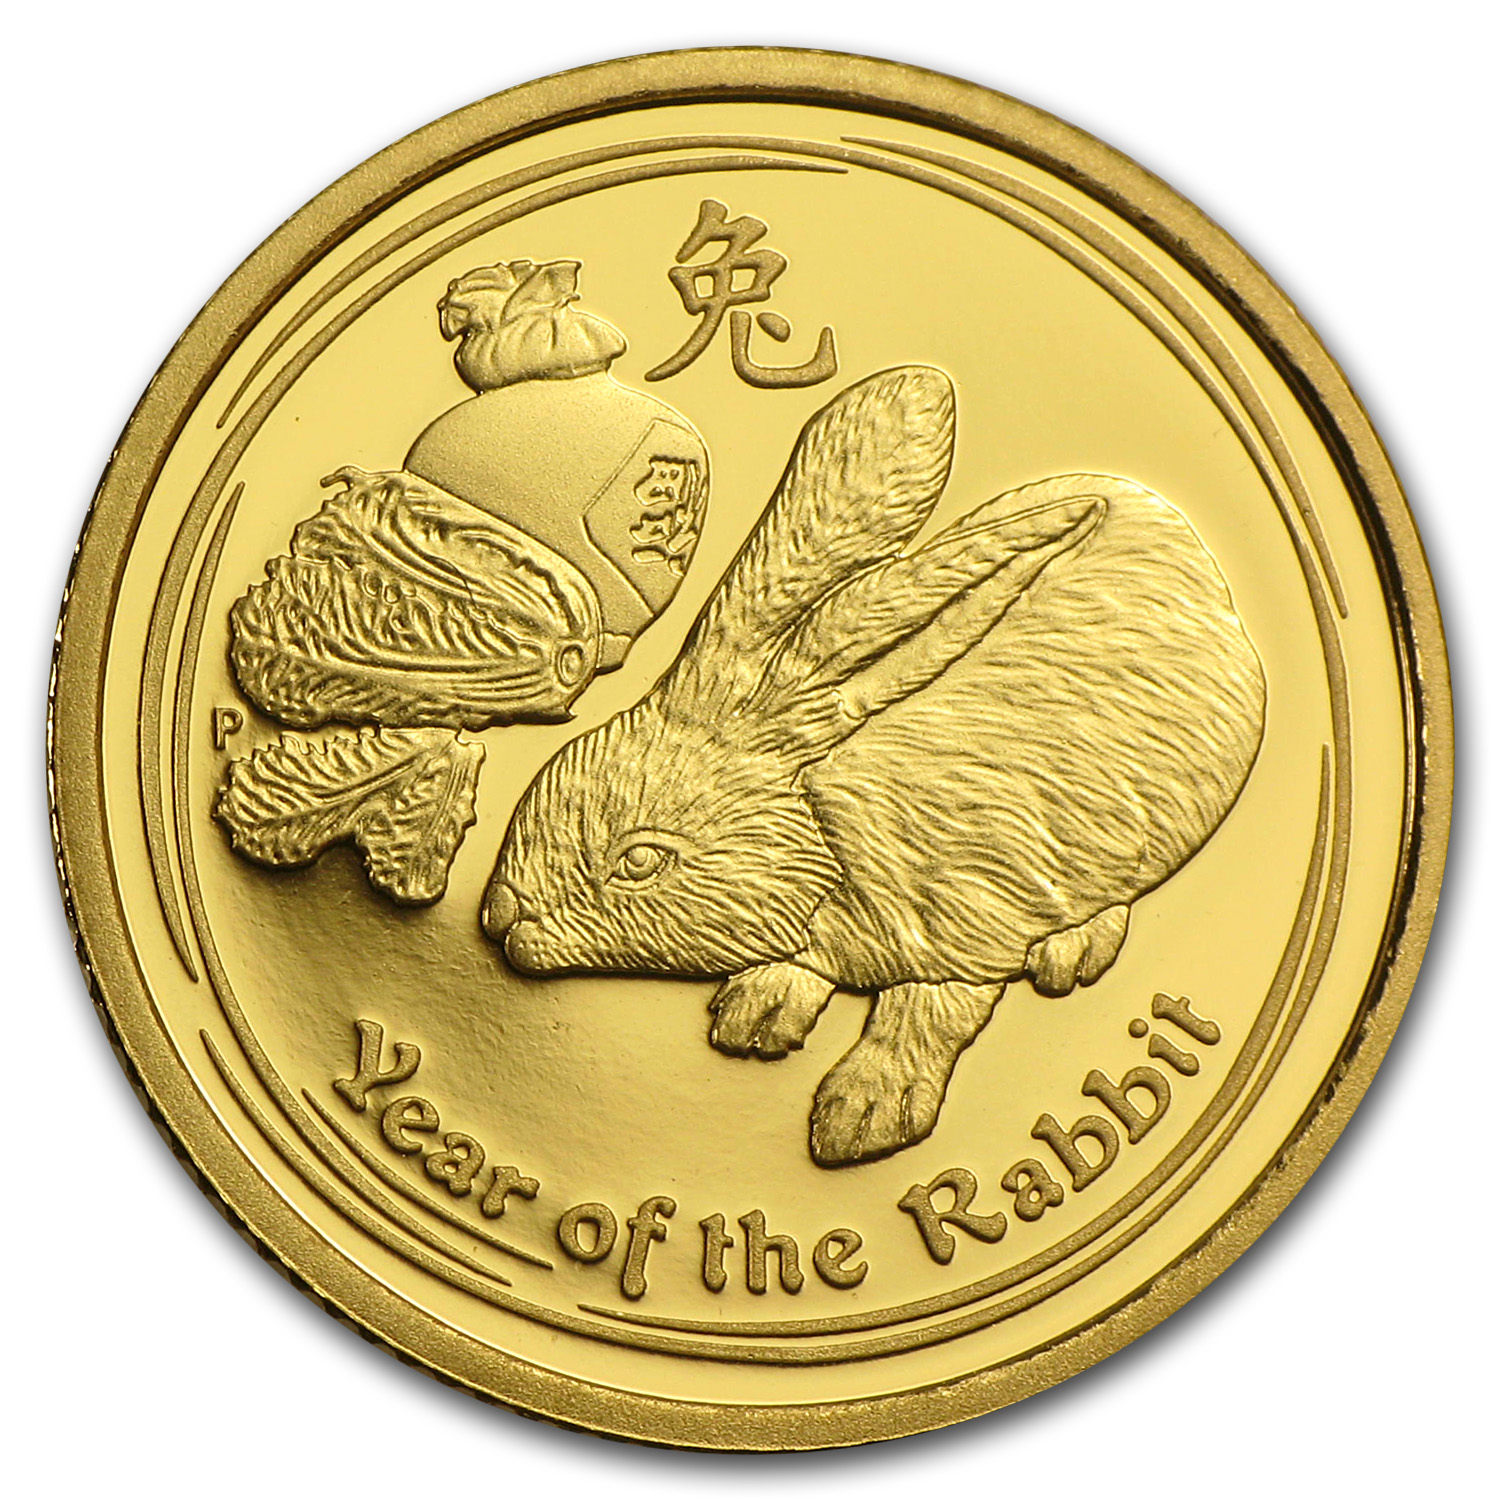 2011 Australia 1/10 oz Gold Lunar Rabbit Proof (Series II)